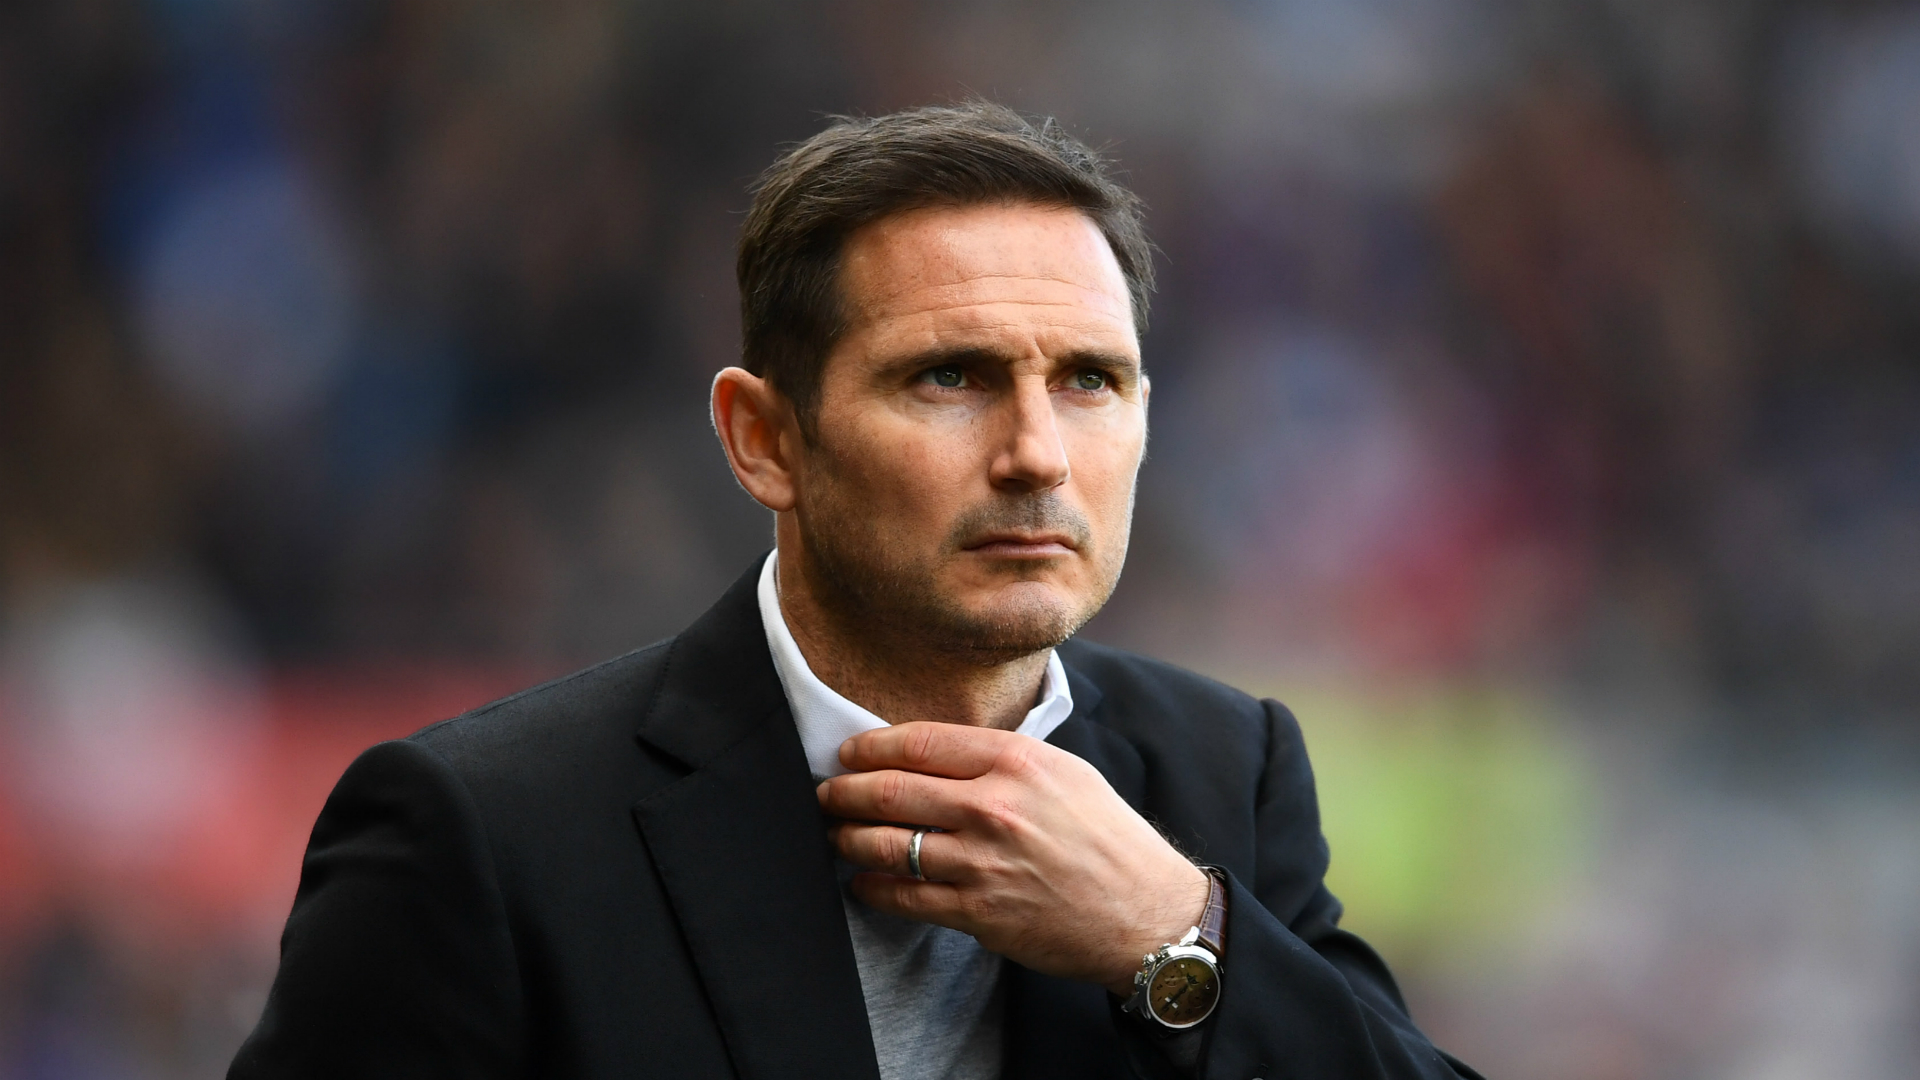 Chelsea have Frank Lampard appointment hope related to Jurgen Klopp and Liverpool